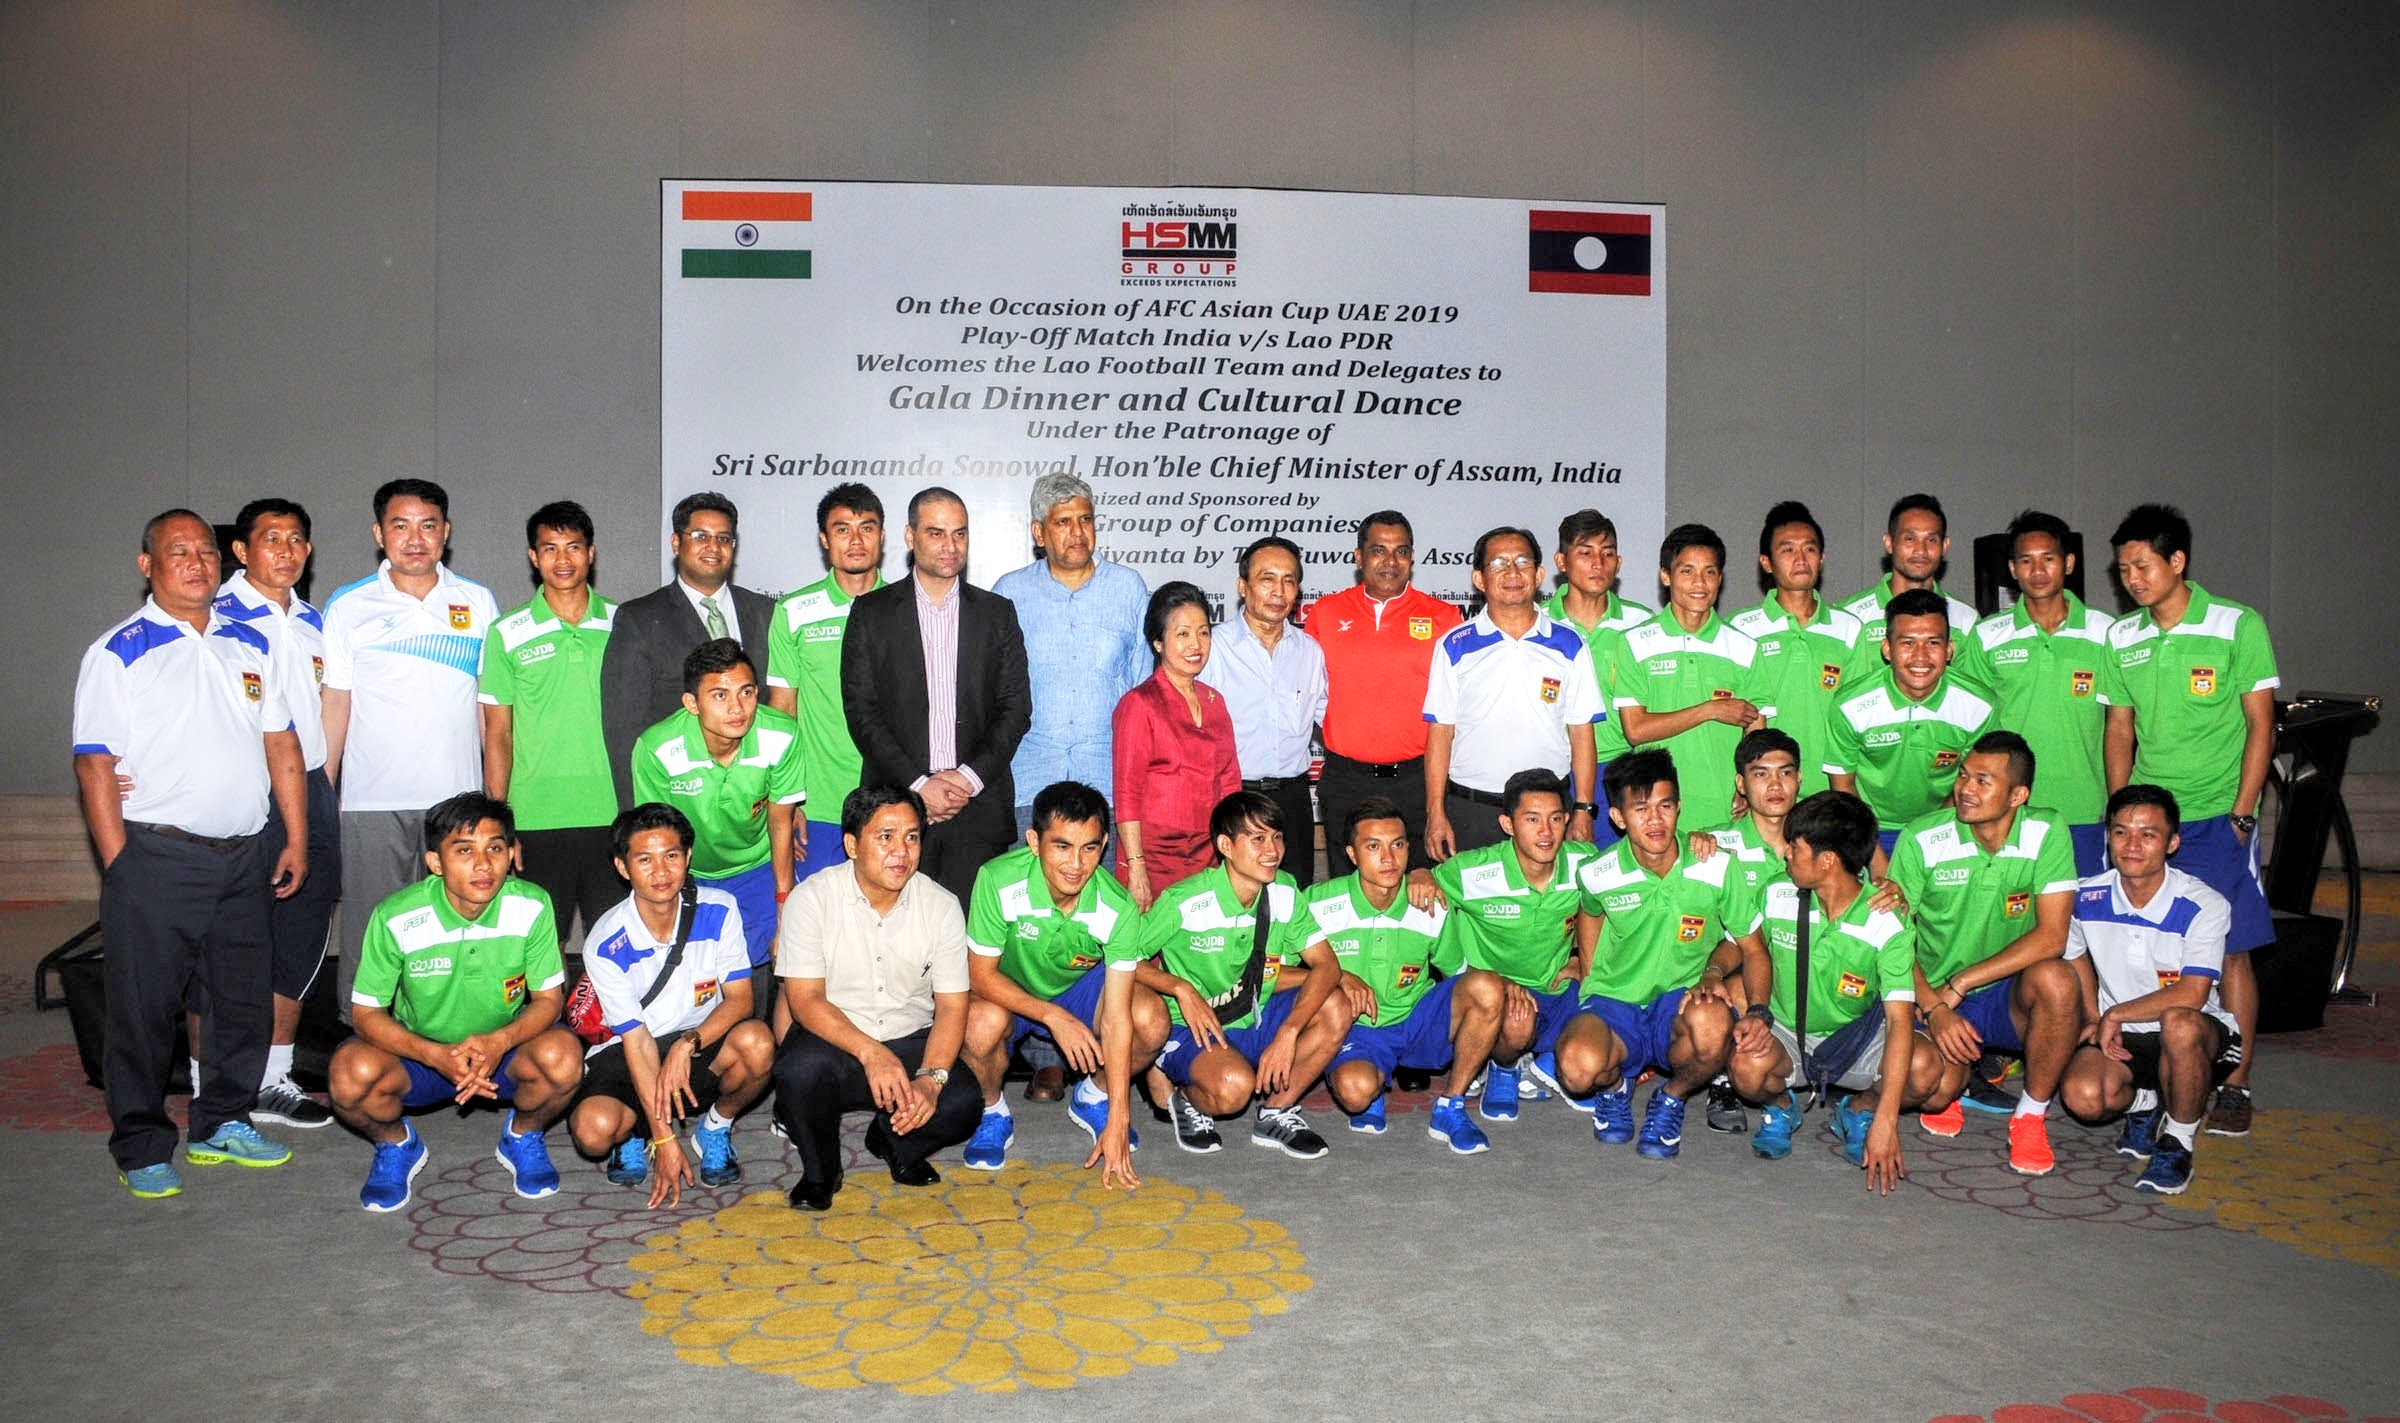 Gala Dinner on the occasion of AFC Asian Cup UAE 2019 Qualify Match India V/S Lao PDR and India - Lao PDR Bilateral Trade and Cultural Exchange Press Conference sponsored by HSMM Group of Companies at Vivant by Taj, Guwahati, Assam, India on 07-08 June 2016